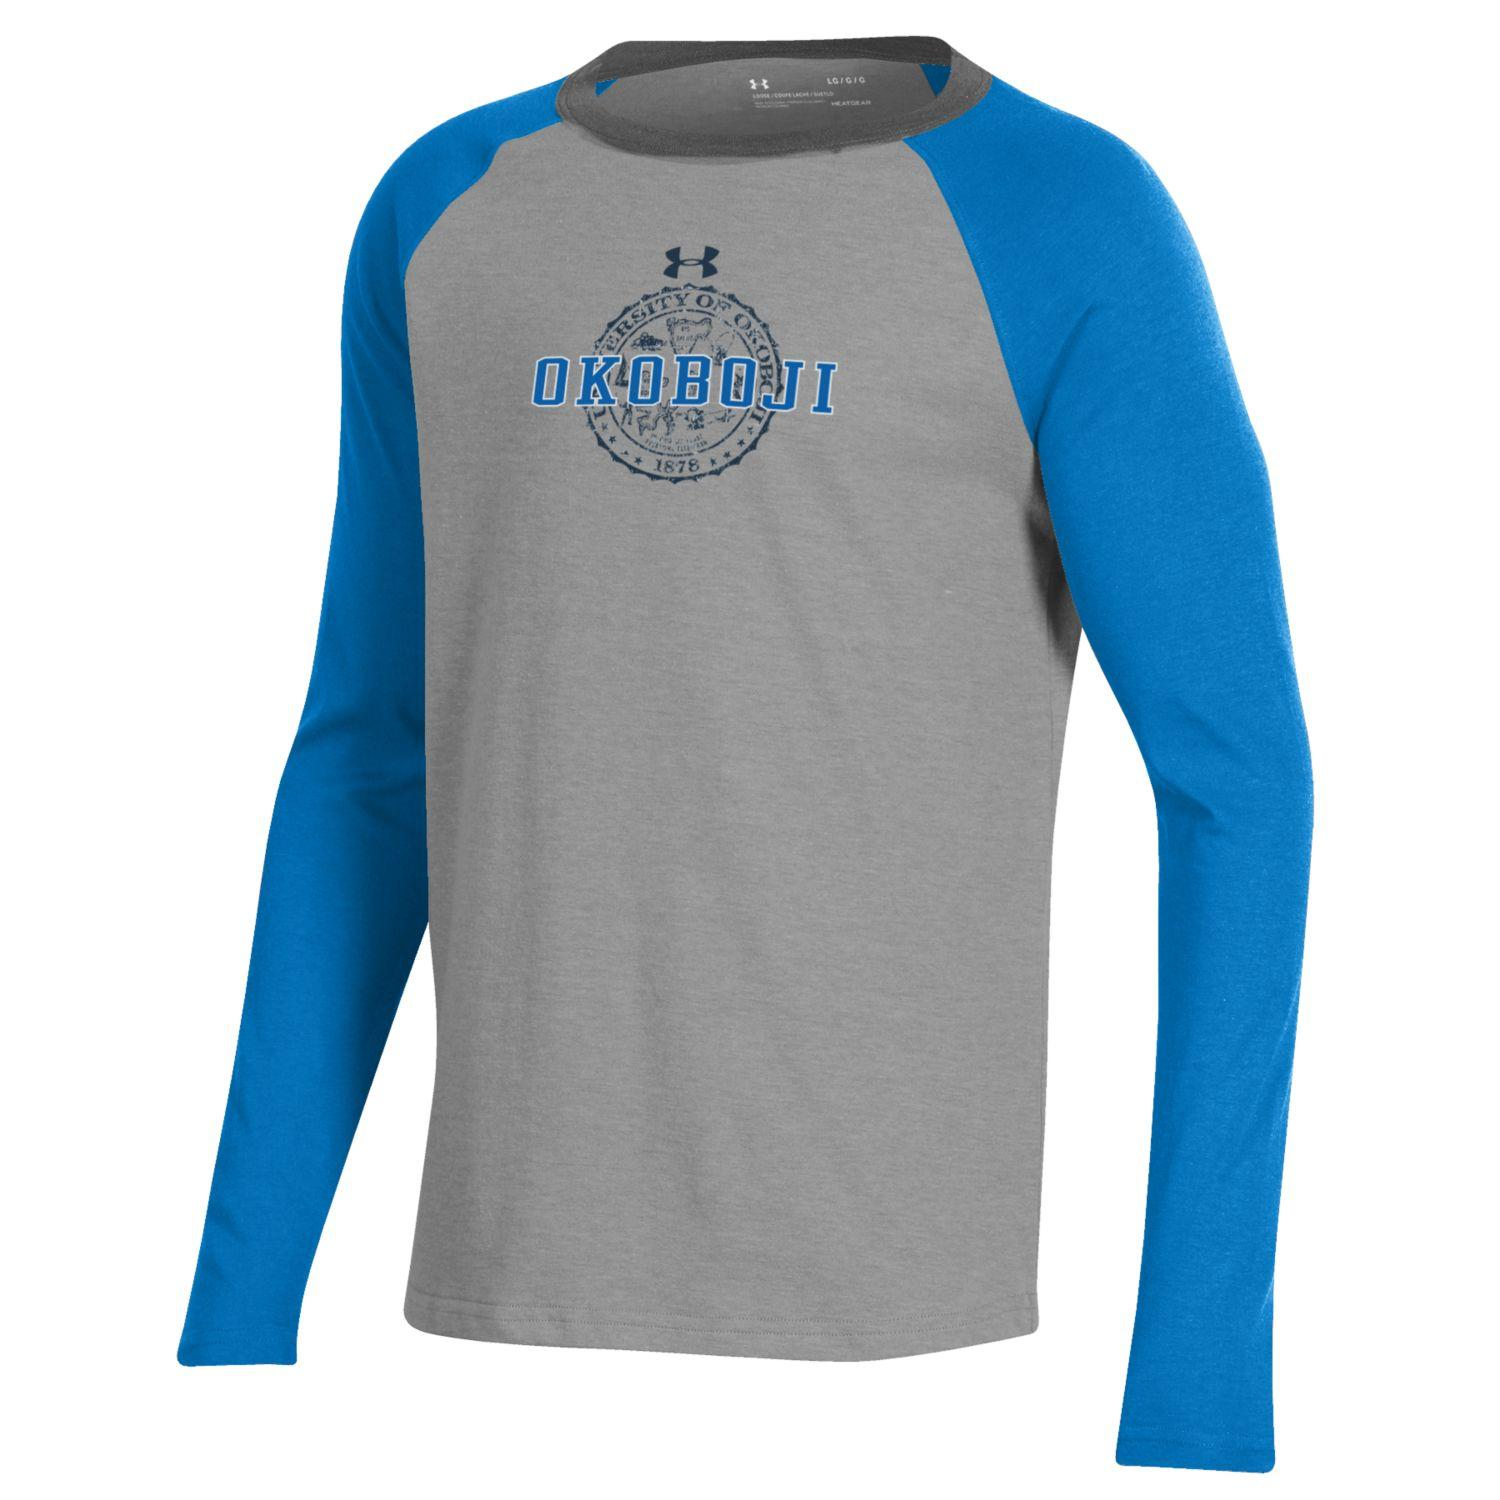 Okoboji Boys Tri-Color Performance Cotton Baseball Tee - Powder Keg